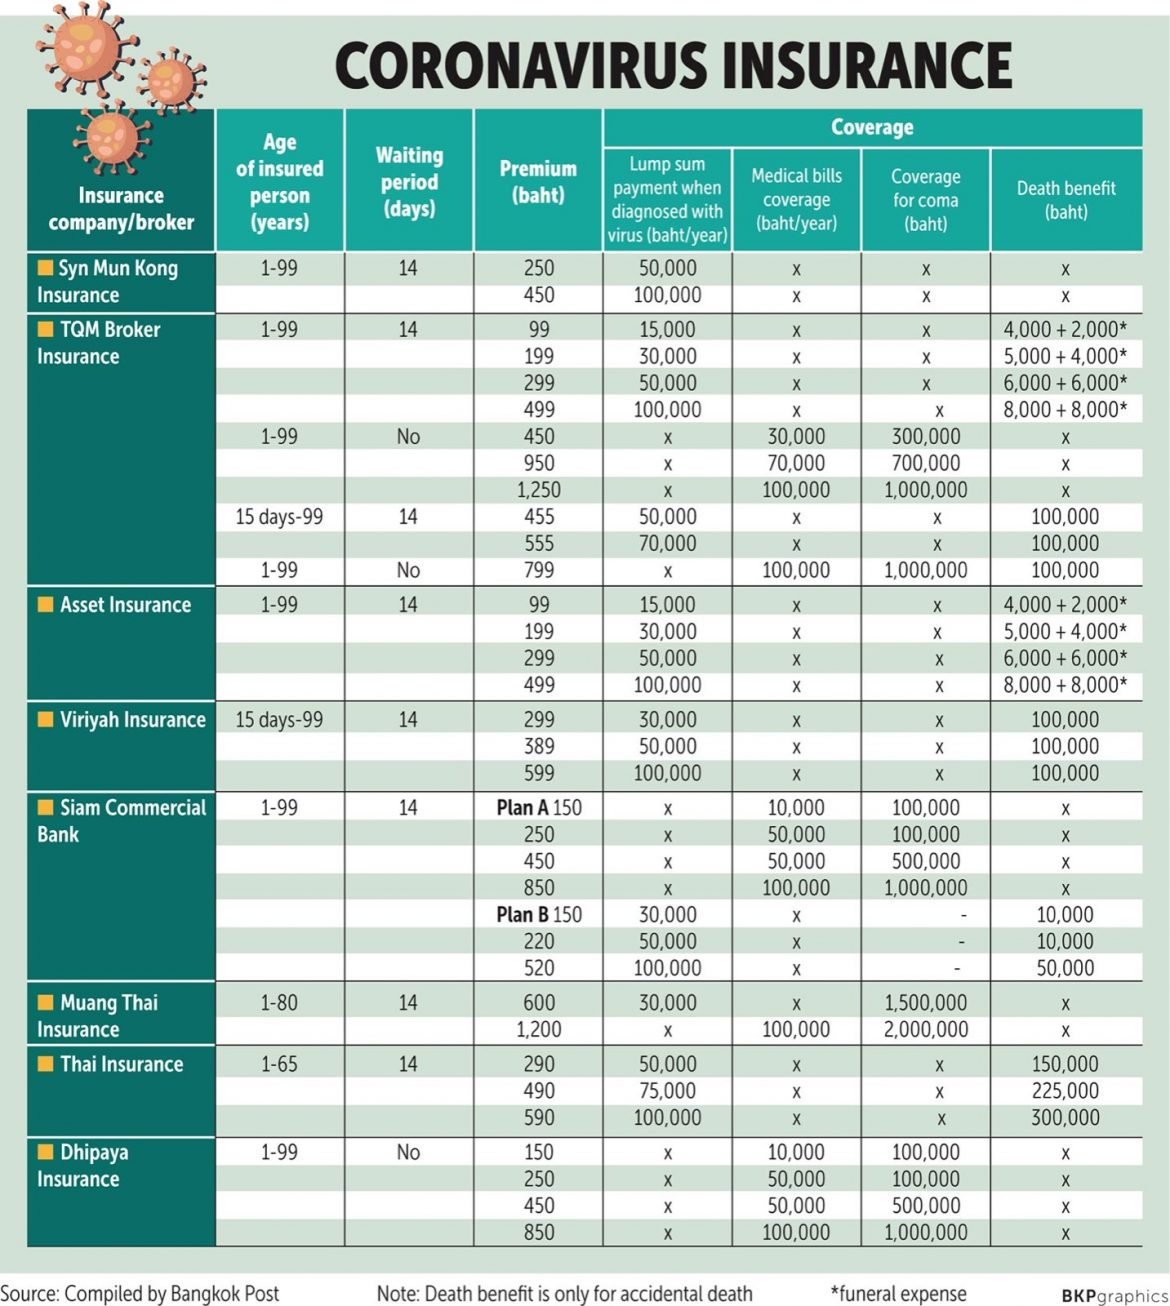 Finding the right coverage for COVID-19 insurance ...